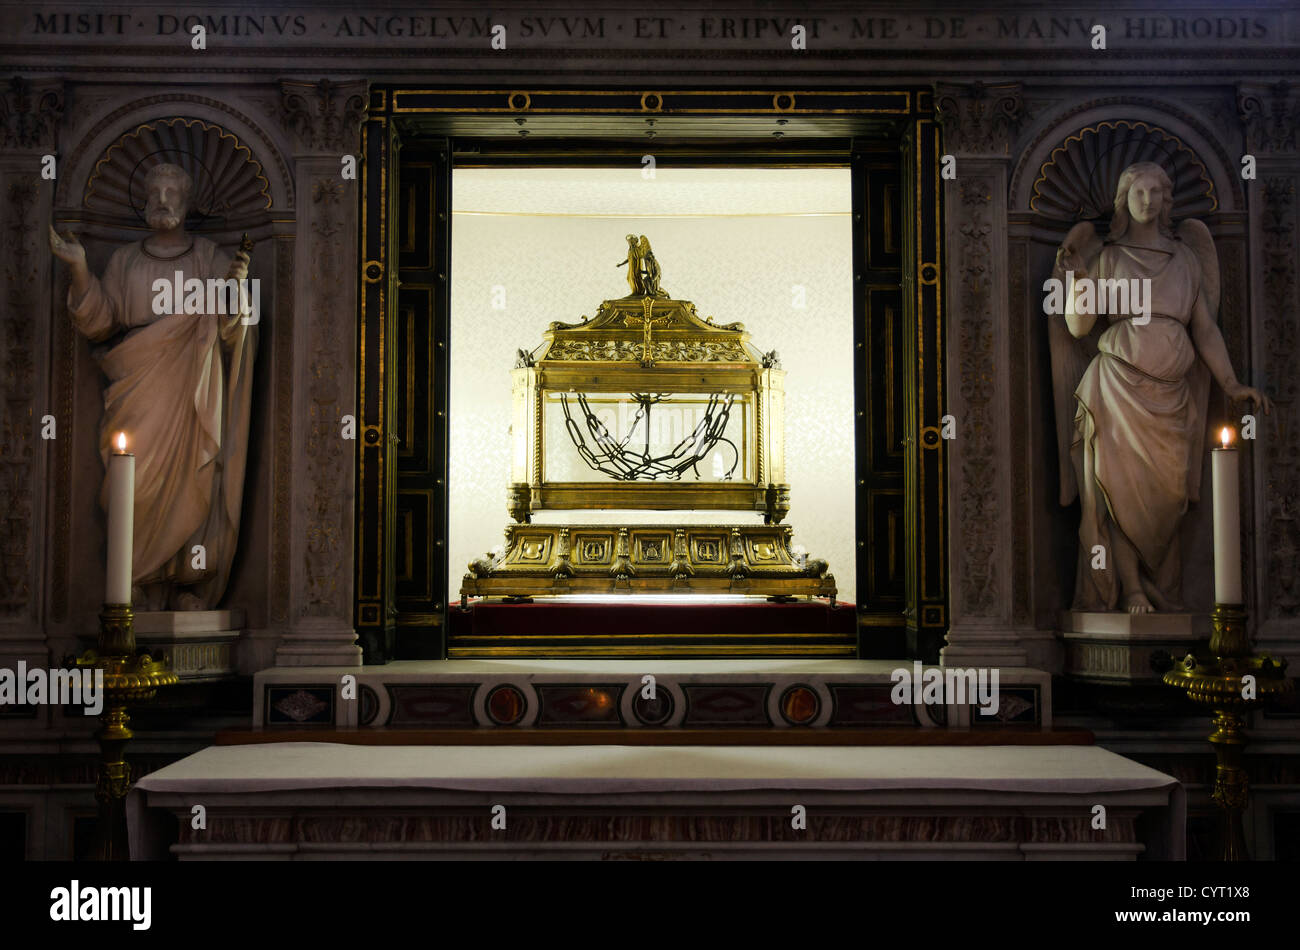 Reliquary containing the chains of St. Peter in San Pietro in Vincoli church - Rome, Italy Stock Photo